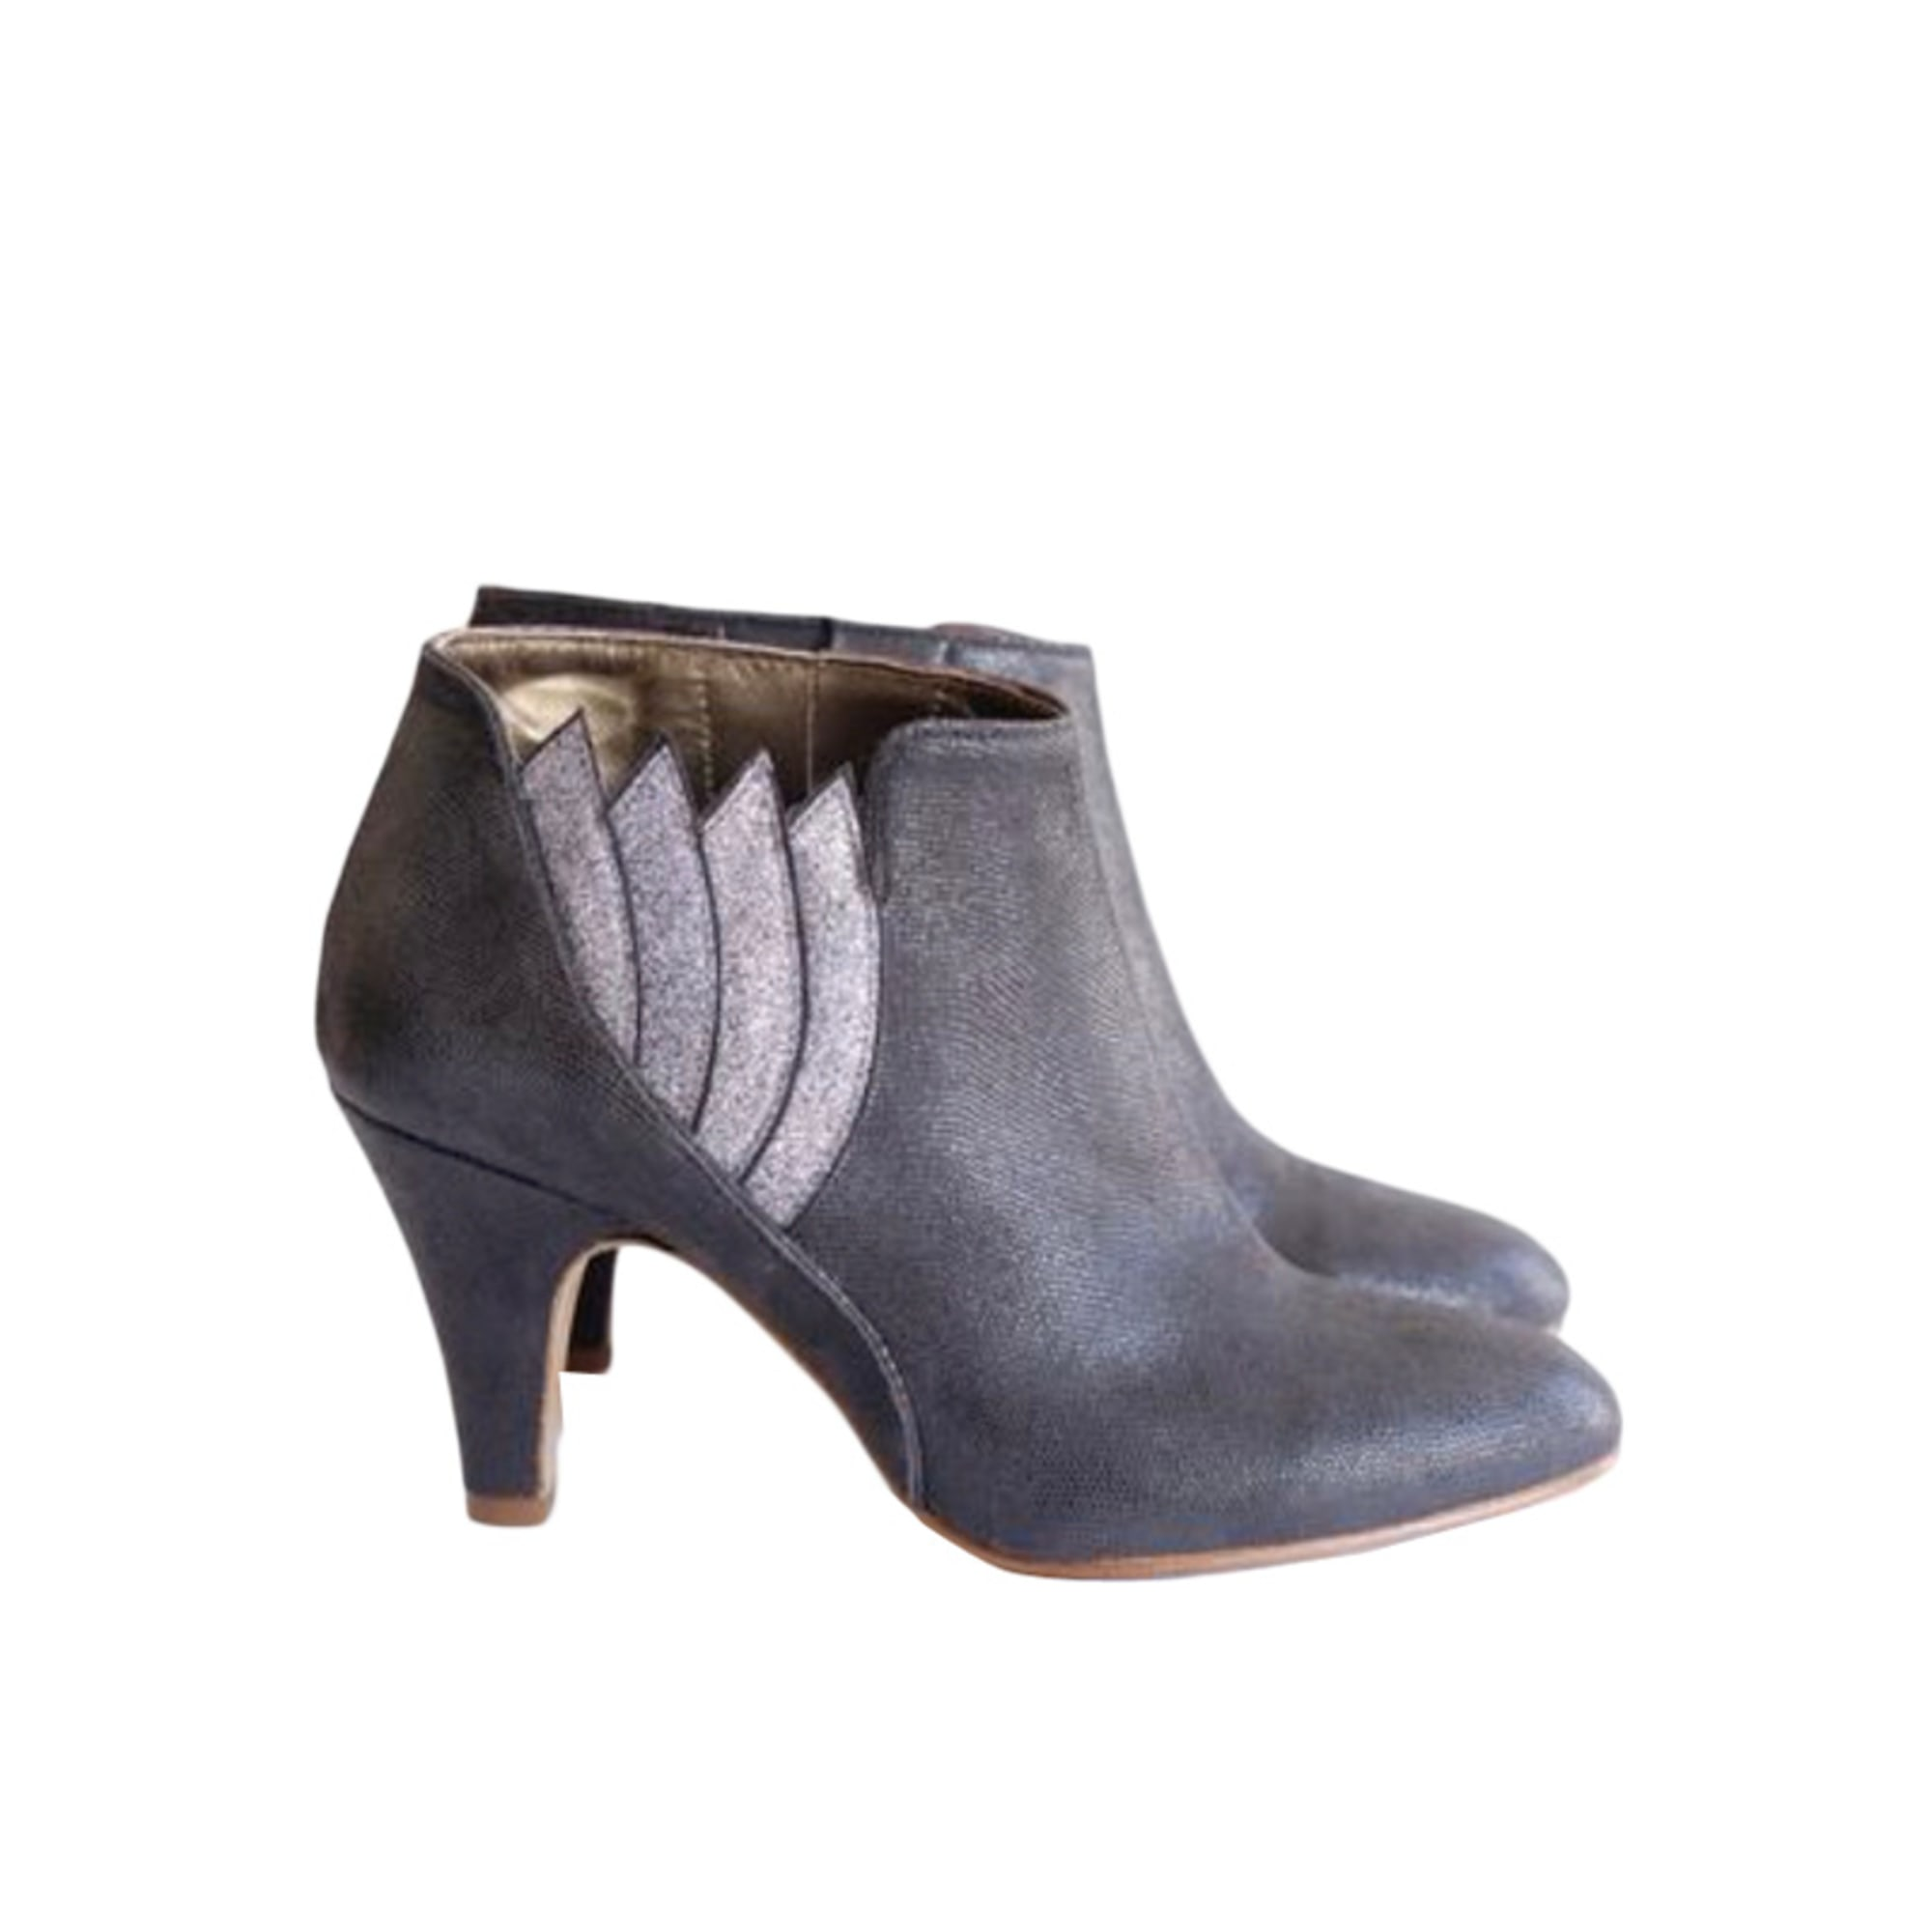 High Heel Ankle Boots PATRICIA BLANCHET Gray, charcoal